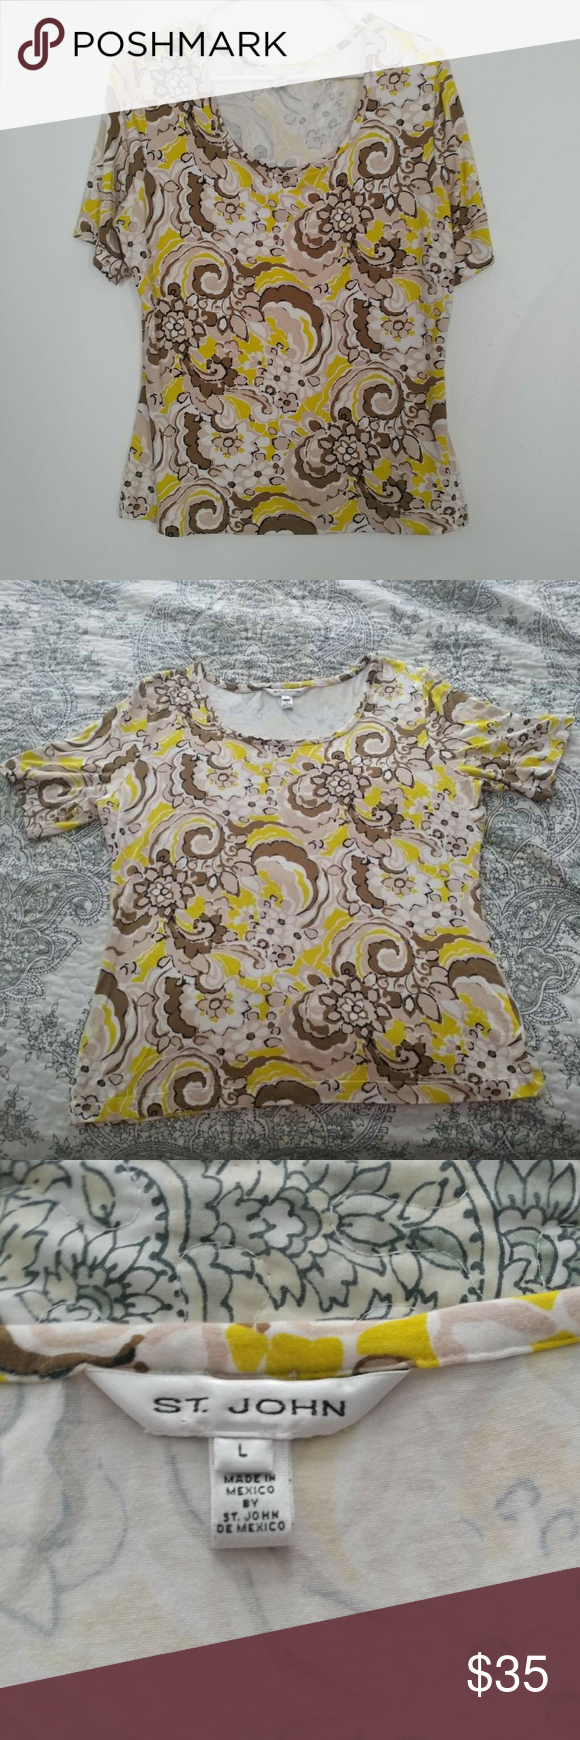 St john abstract floral design size large this shirt has white tan brown also in my posh picks rh pinterest